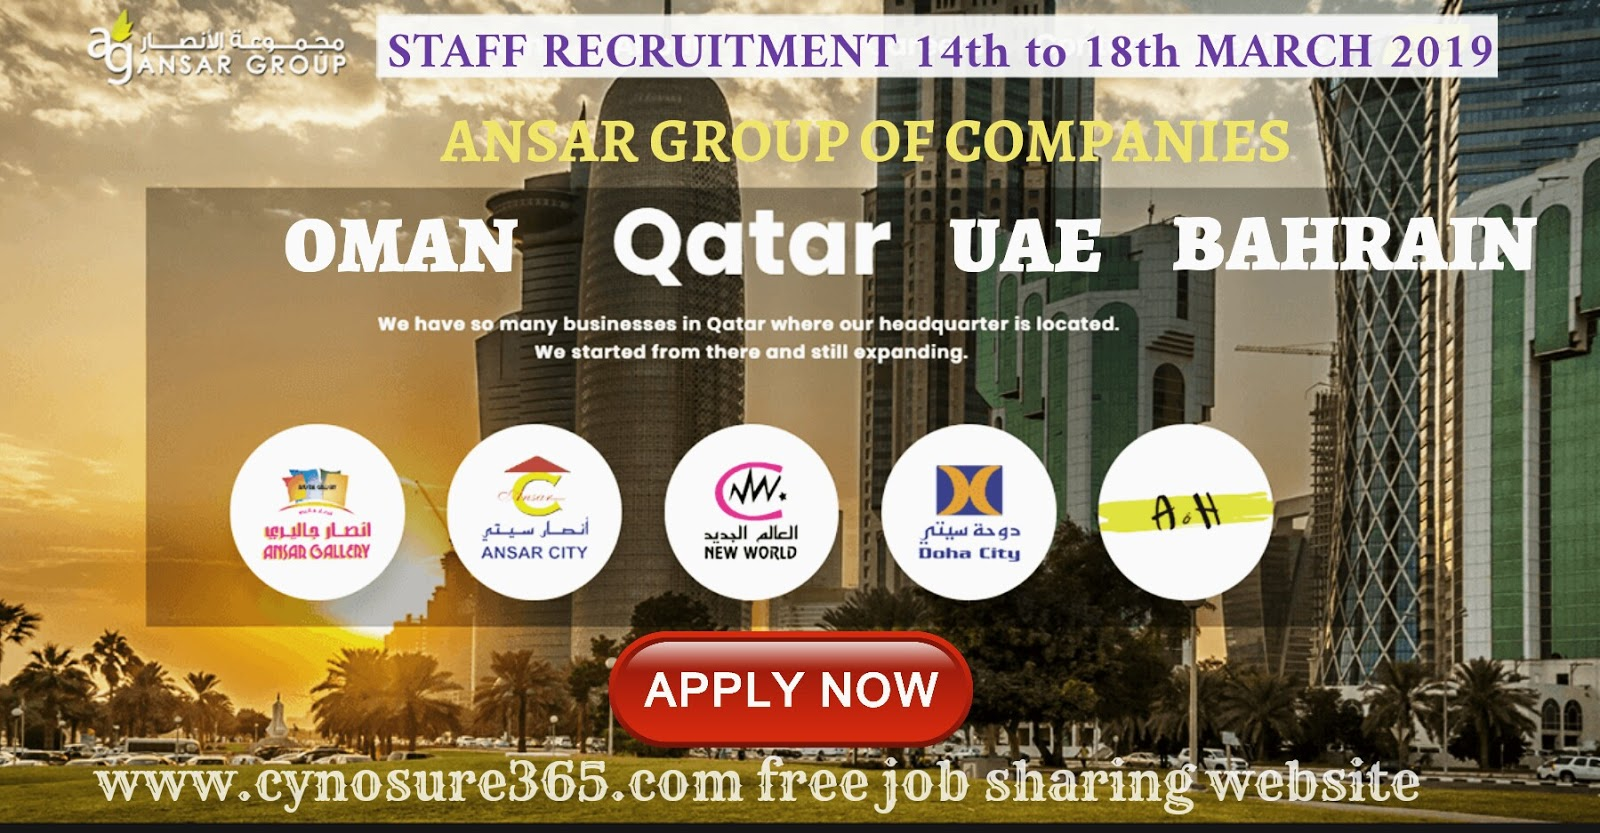 ANSAR GROUP OF COMPANIES JOB INTERVIEWS MARCH 2019 - CYNOSURE365